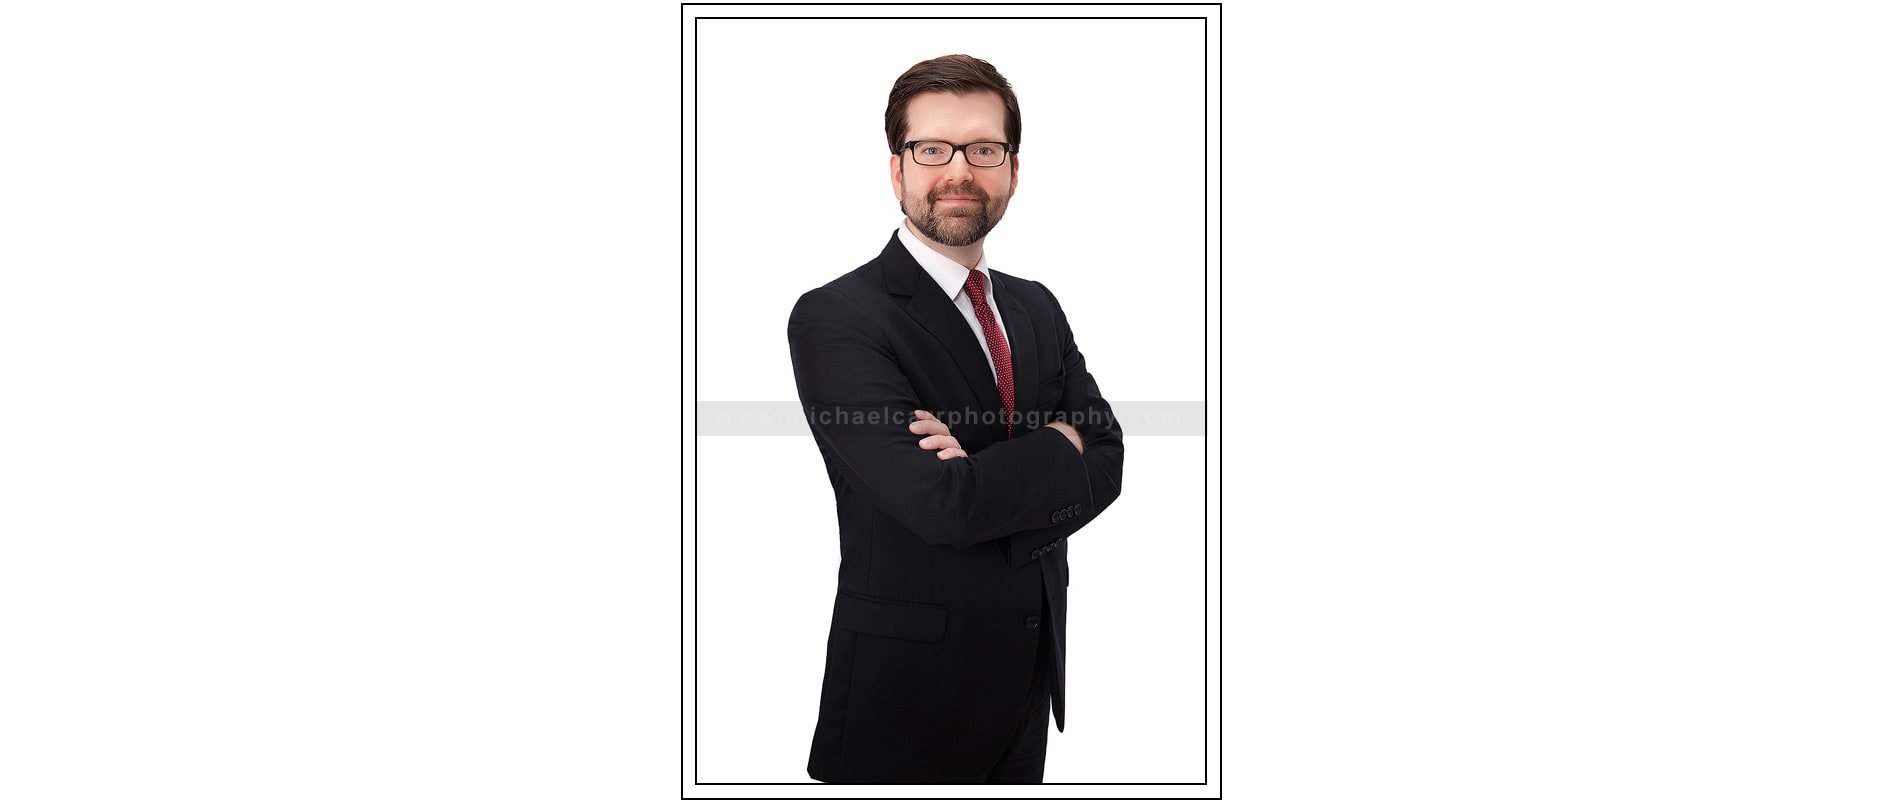 Business portrait on White background